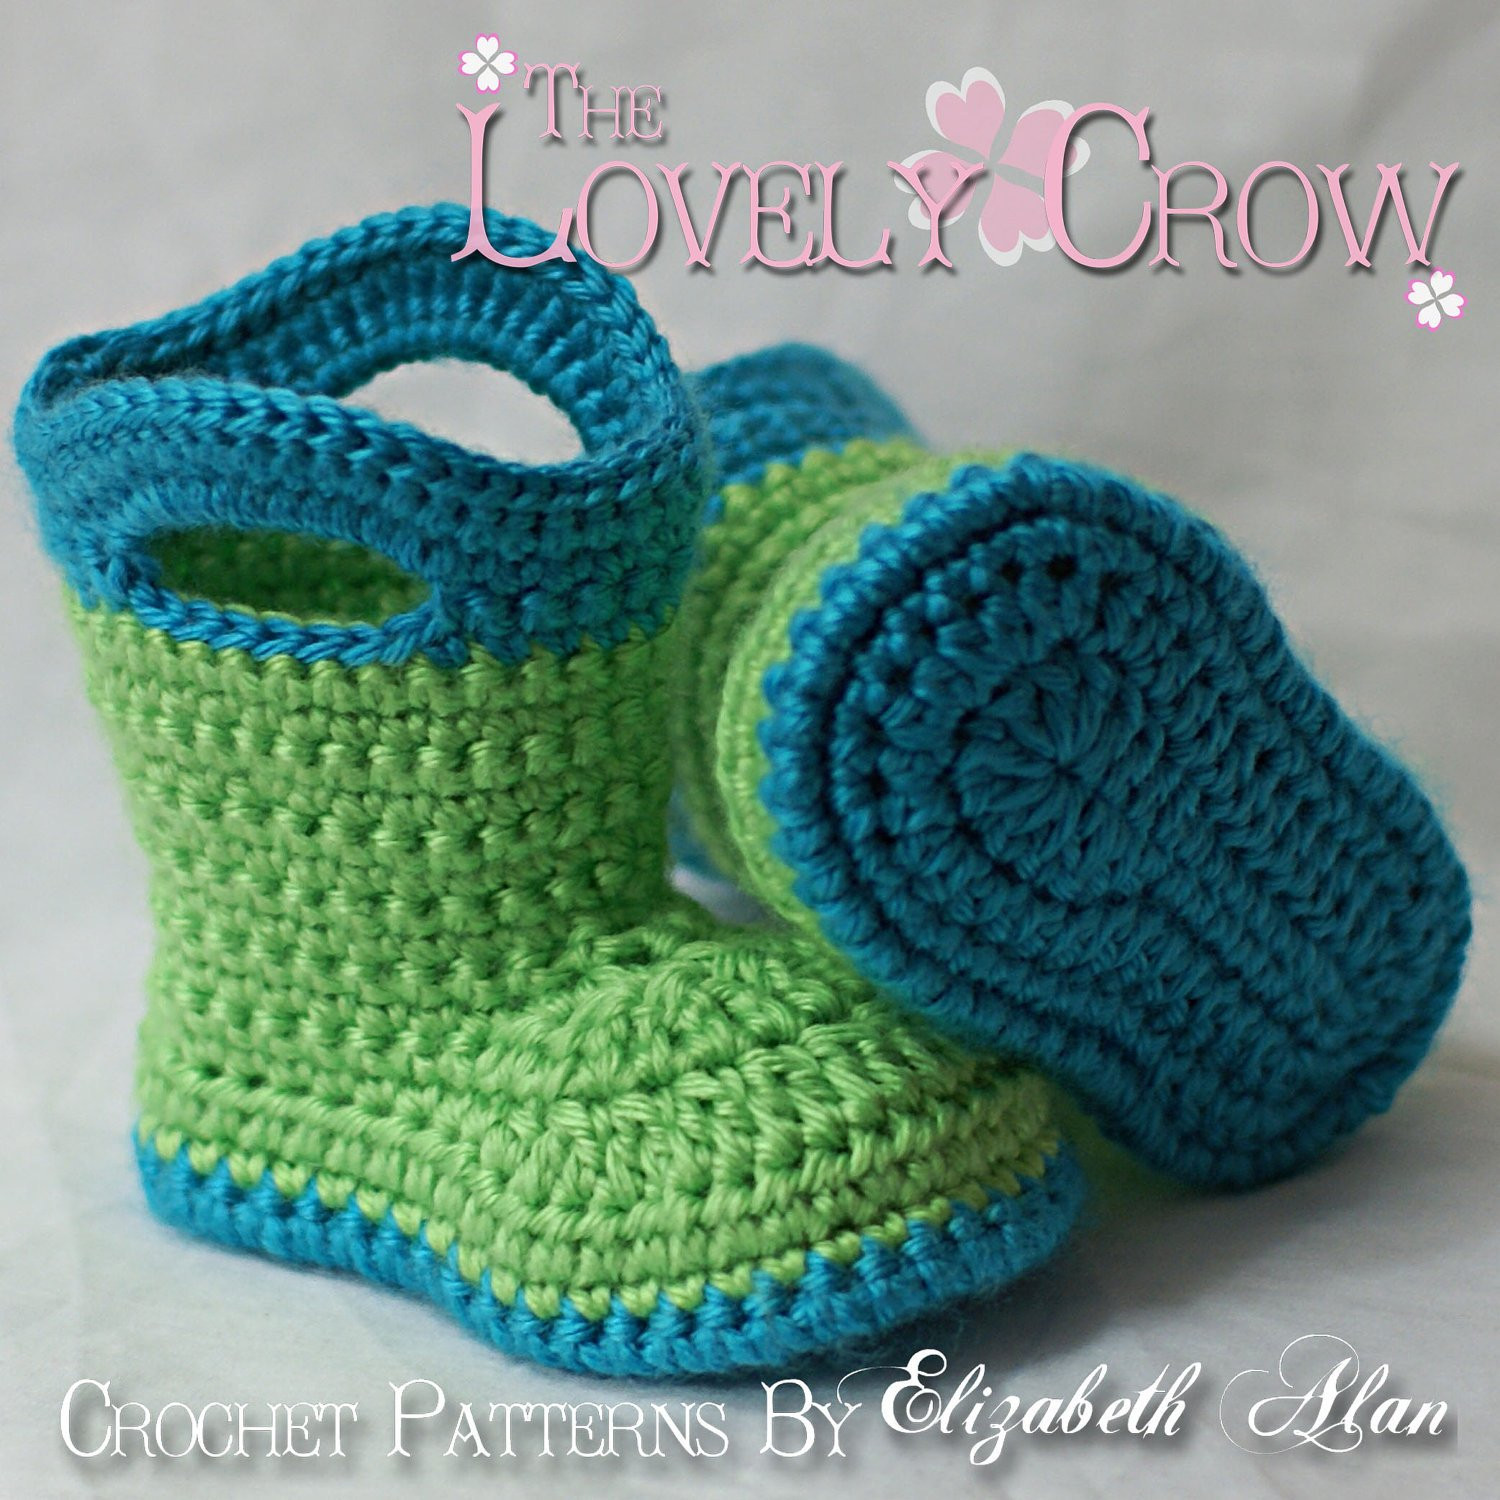 Best Of Baby Crochet Pattern Baby for Baby Goshalosh Boots 4 Sizes Crochet Newborn Baby Booties Of Incredible 49 Models Crochet Newborn Baby Booties